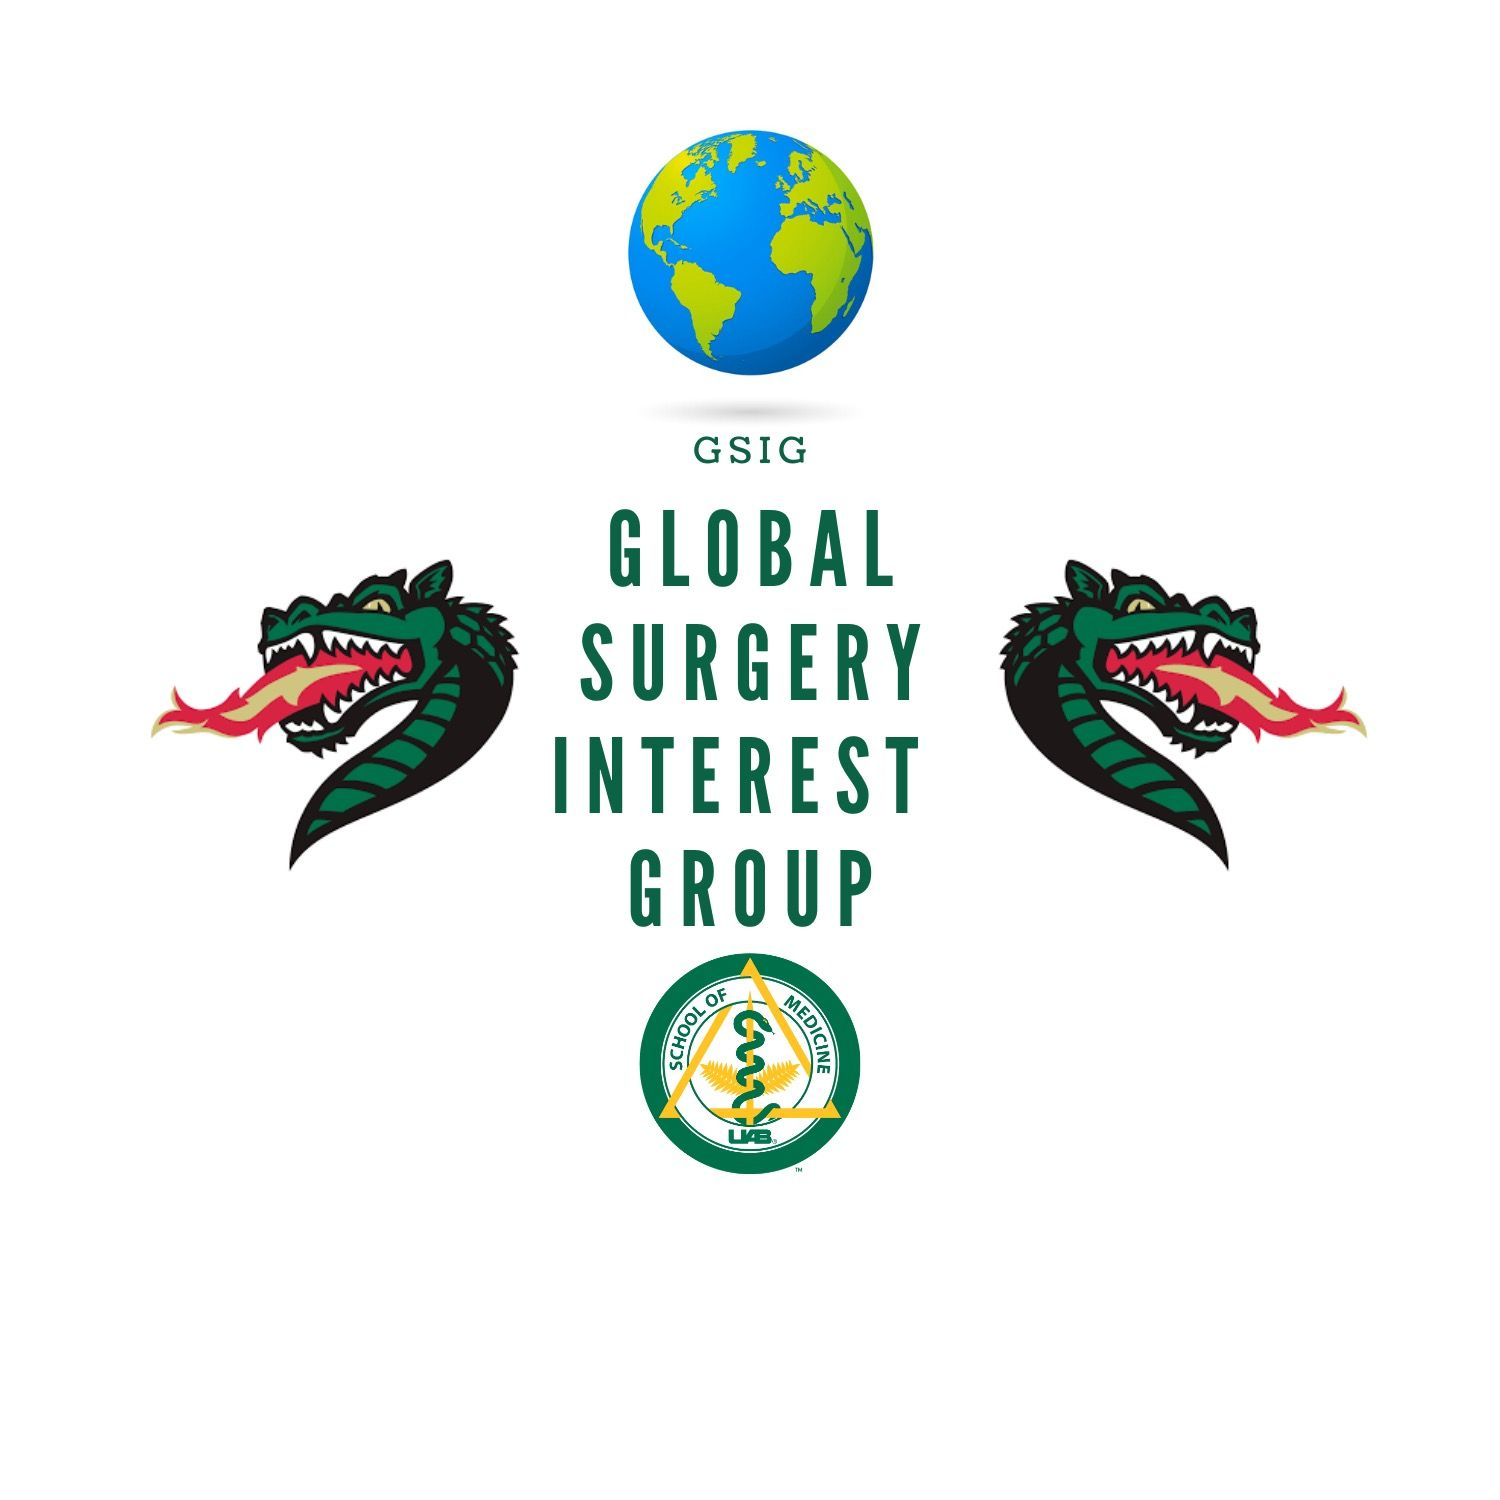 Global Surgery Interest Group